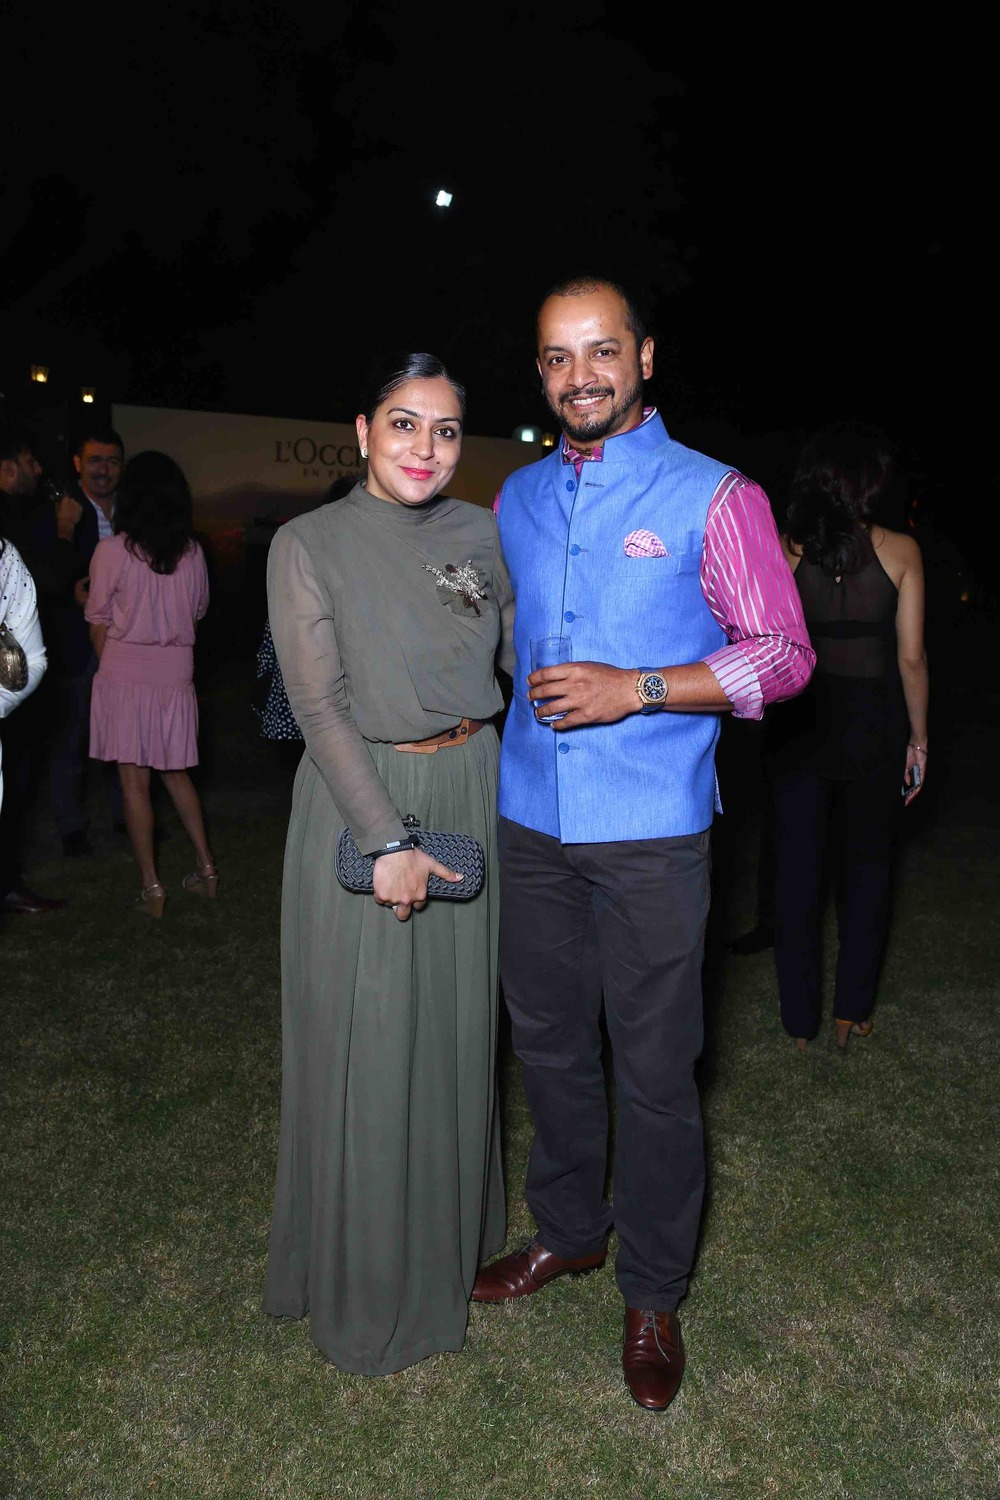 Murli Kartik with his wife Shweta Kartik